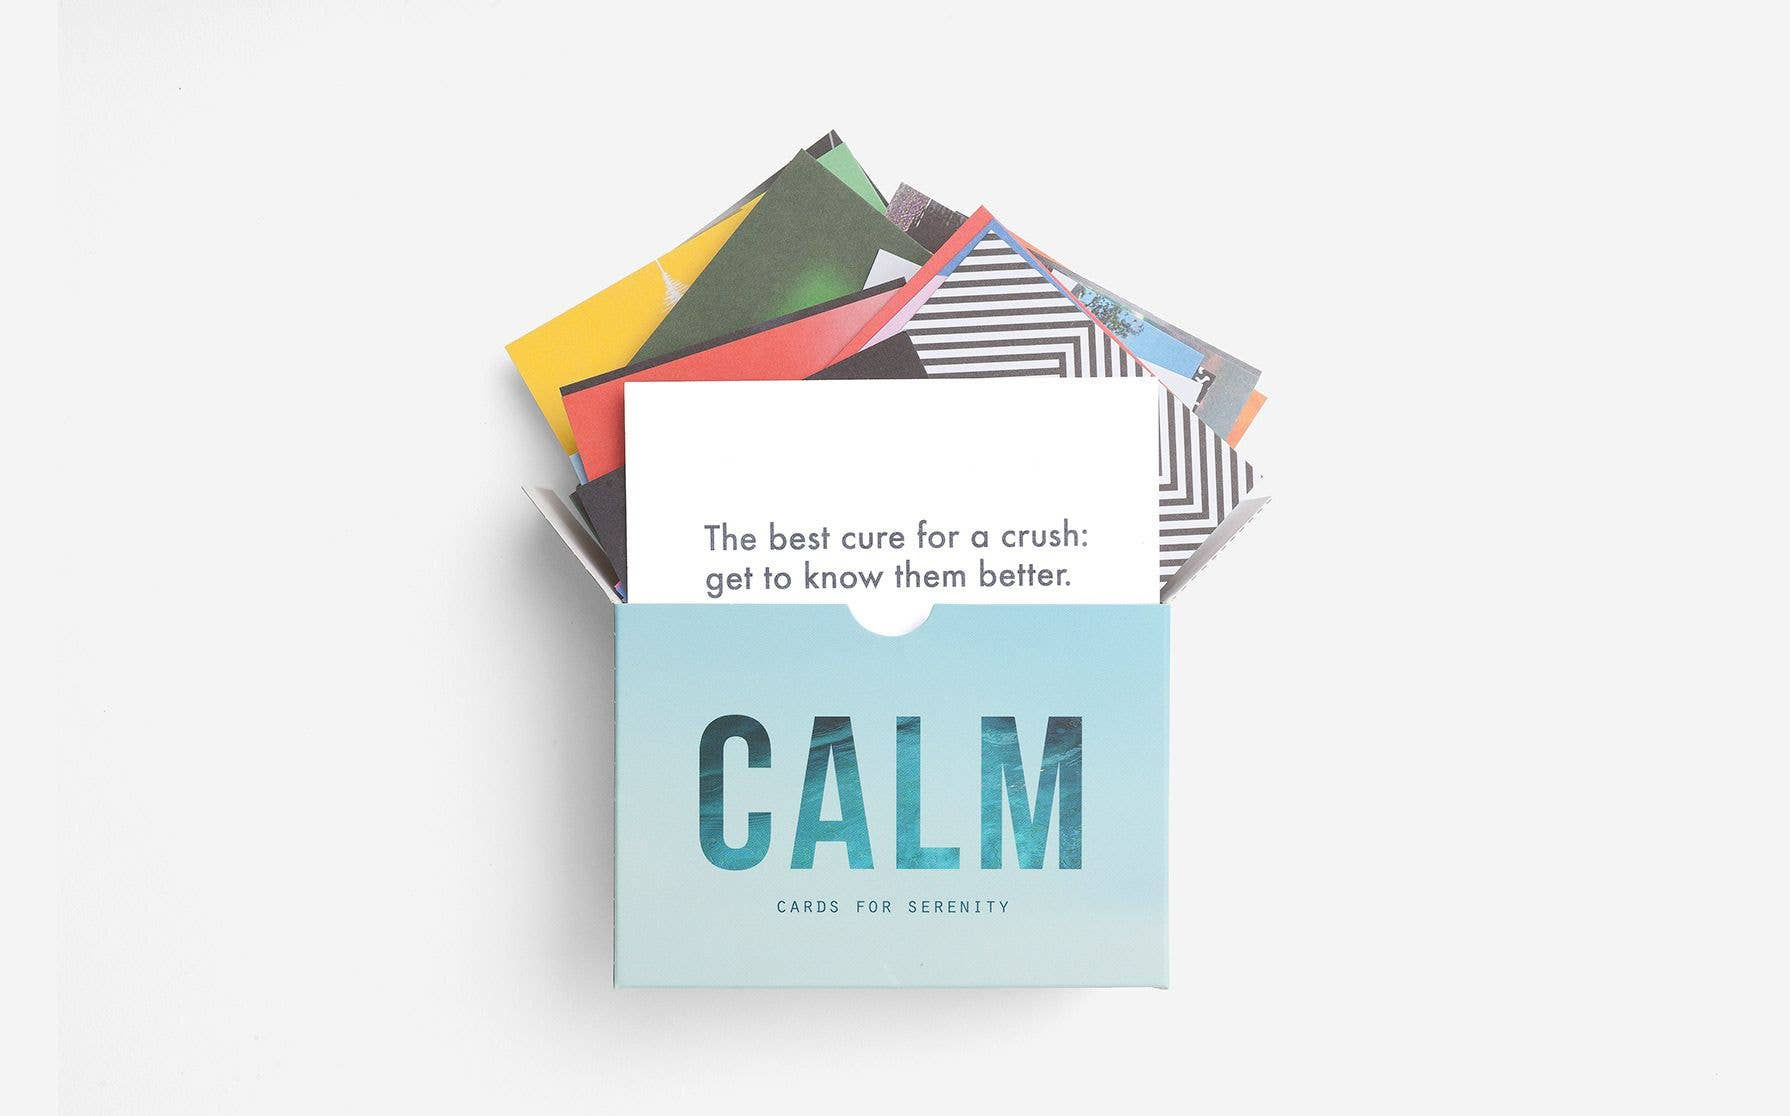 Calm Card Set by The School of Life